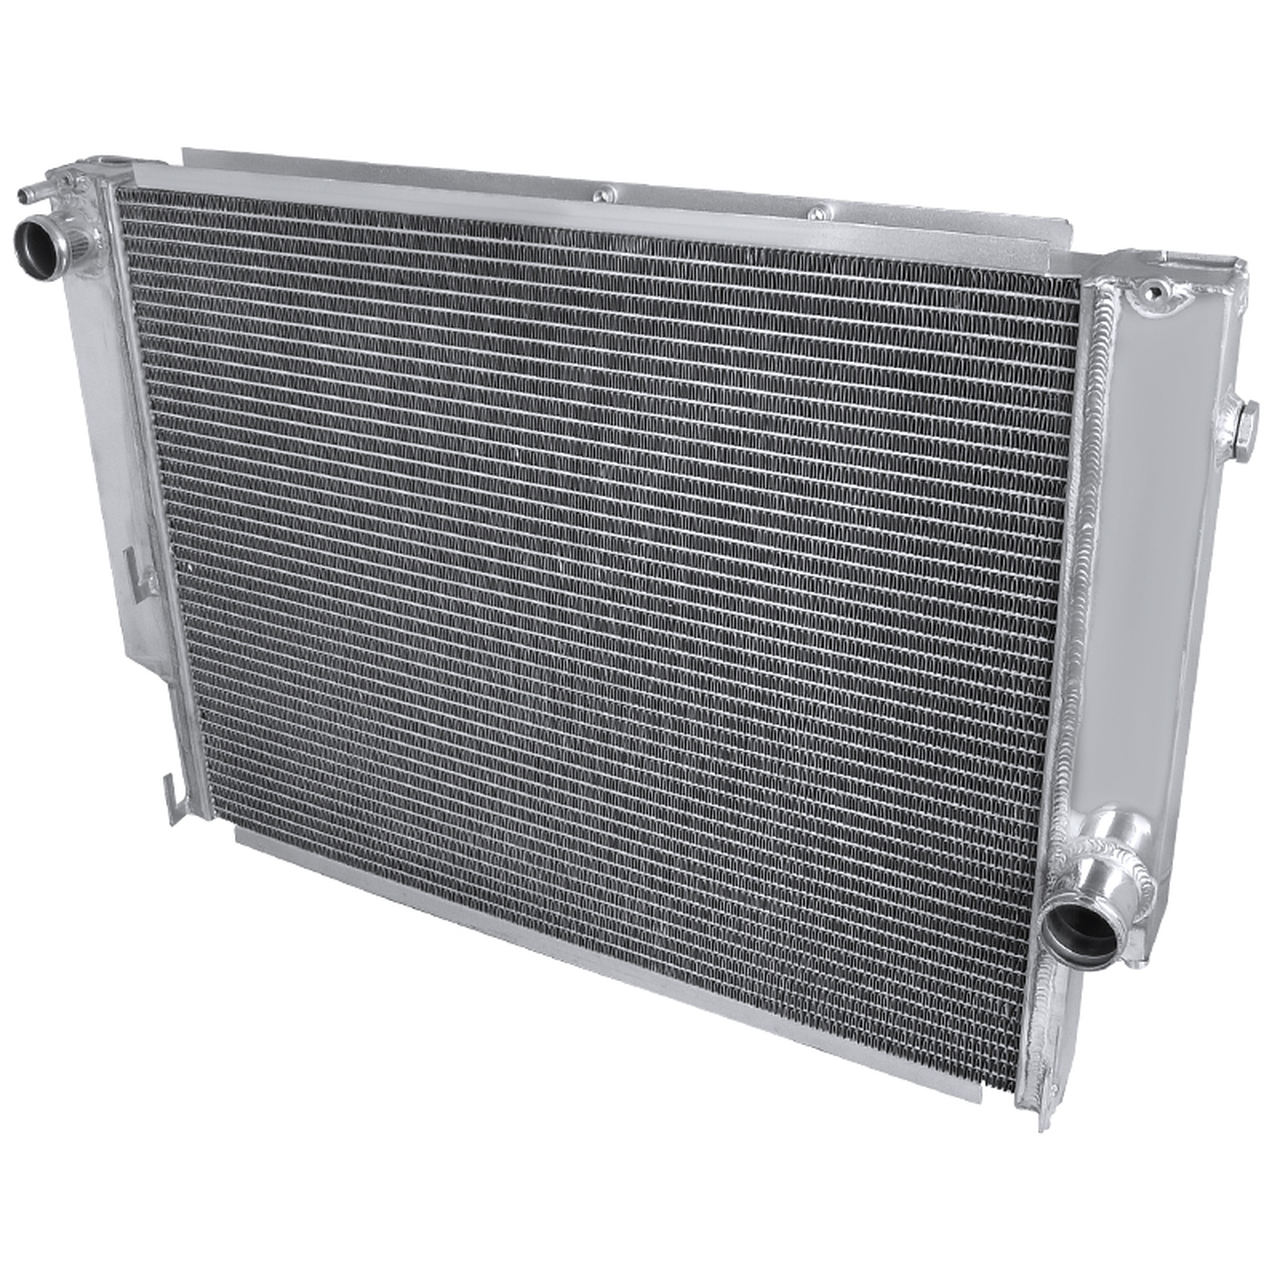 Spec-D Tuning Radiator - Spec-D Tuning RAD-E3692